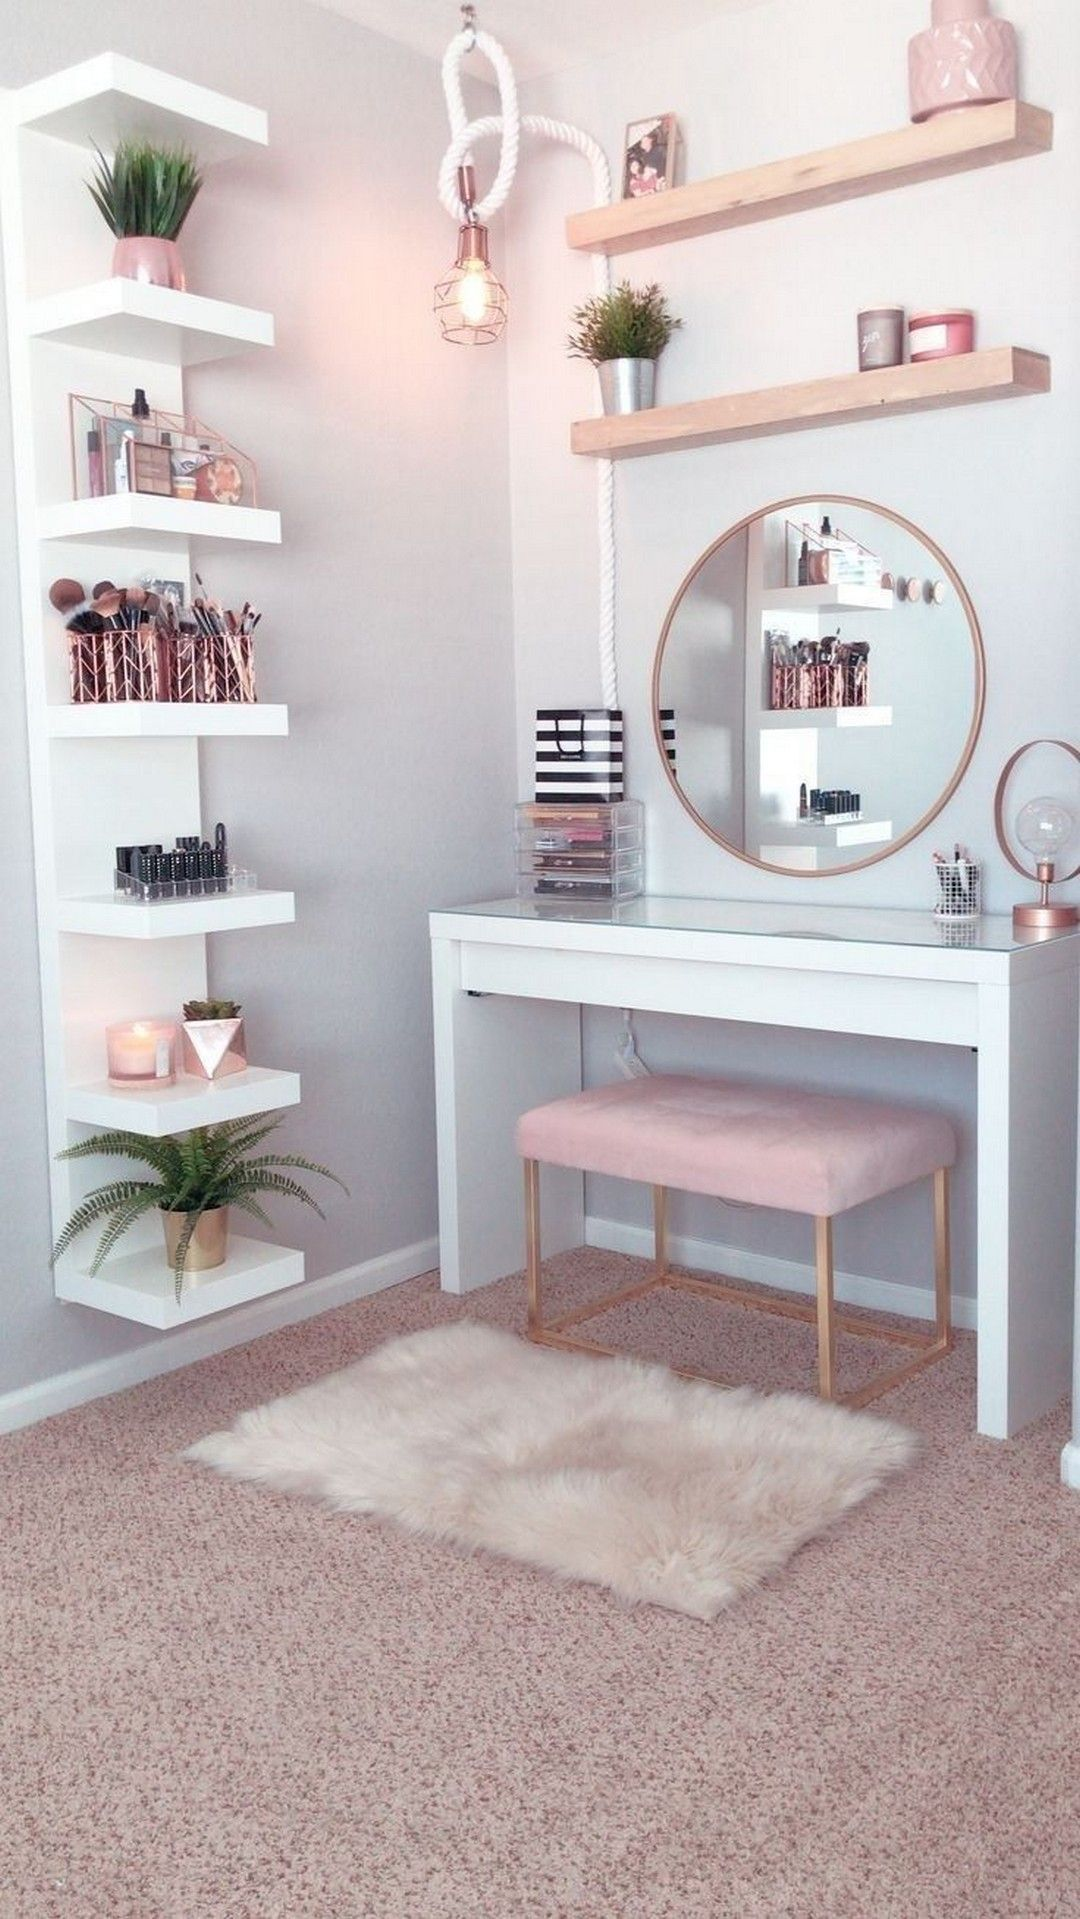 26 Makeup Room Ideas To Brighten Your Morning Routine - metall.togethertechco.com